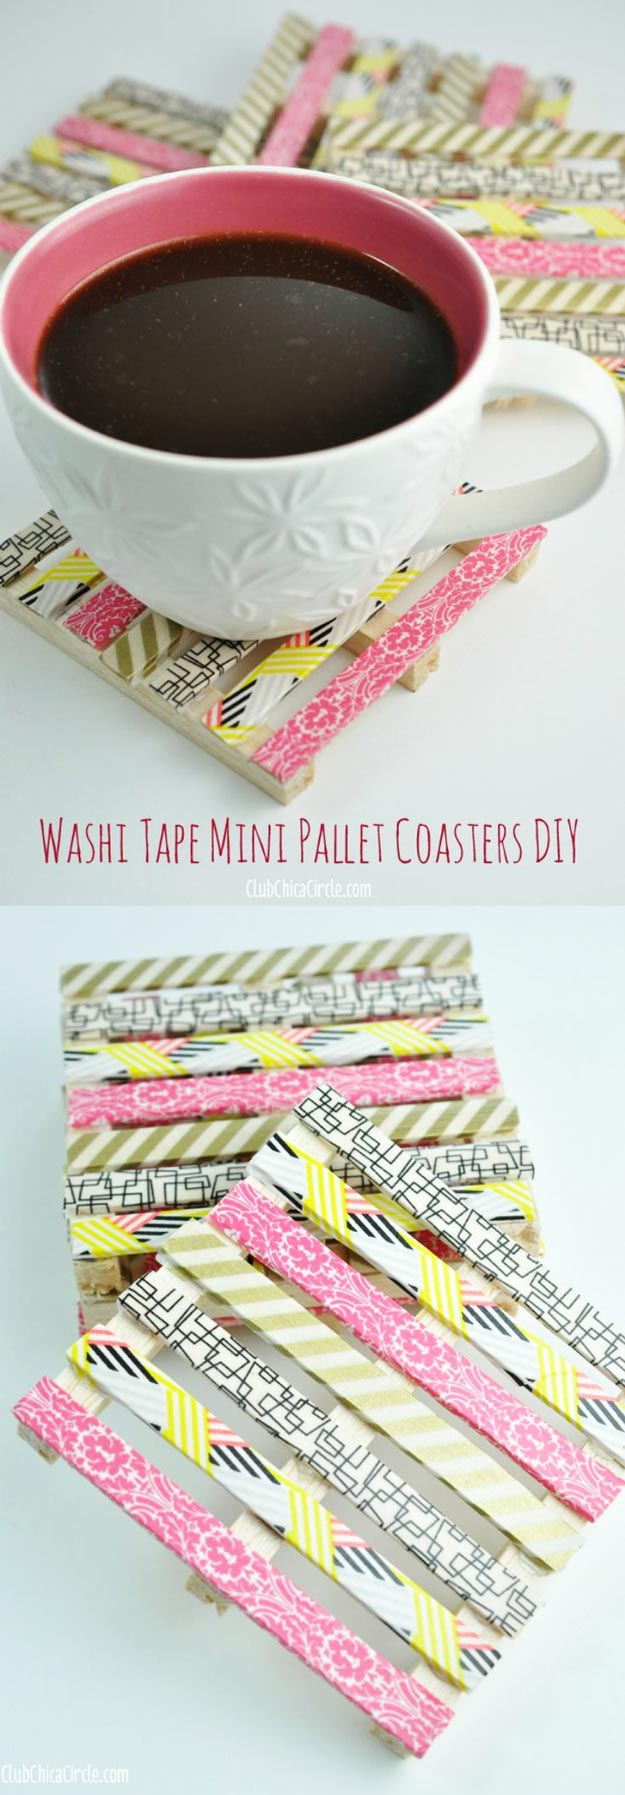 Cool DIY Ideas for Fun and Easy Crafts - DIY Donut Purse is a Cool Homemade Fashion Accessory - DIY Moon Pendant for Easy DIY Lighting in Teens Rooms - Dip Dyed String Wall Hanging - DIY Mini Easel Makes Fun DIY Room Decor Idea - Awesome Pinterest DIYs that Are Not Impossible To Make - Creative Do It Yourself Craft Projects for Adults, Teens and Tweens.Washi Tape Mini Wood Pallet Coasters - Easy DIY Ideas for Cheap Things To Sell on Etsy, Online and for Craft Fairs. http://diyprojectsforteens.com/fun-crafts-pinterest